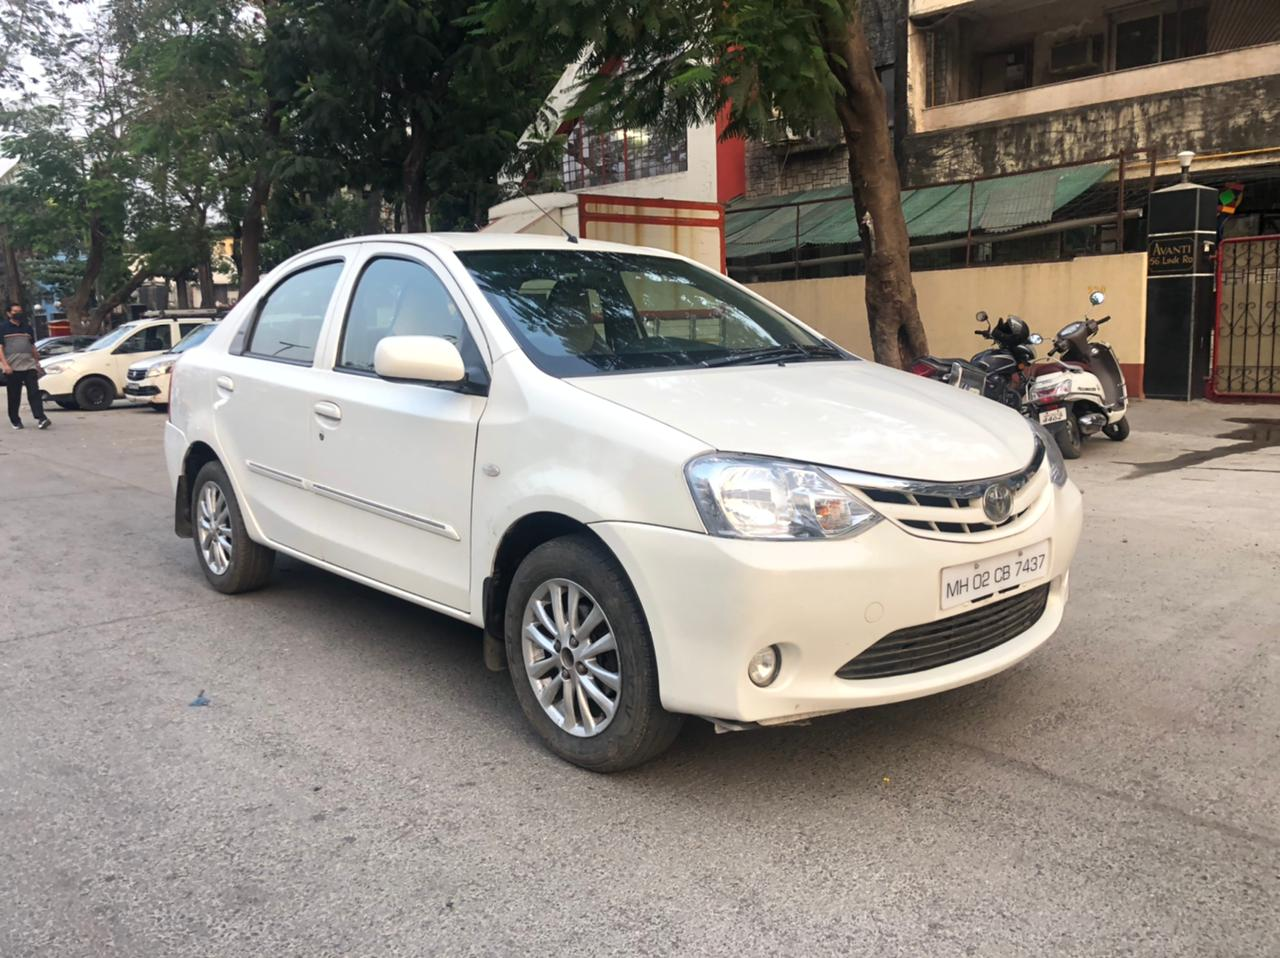 Used Cars In Mumbai Second Hand Cars For Sale Used Cars Mfcwl